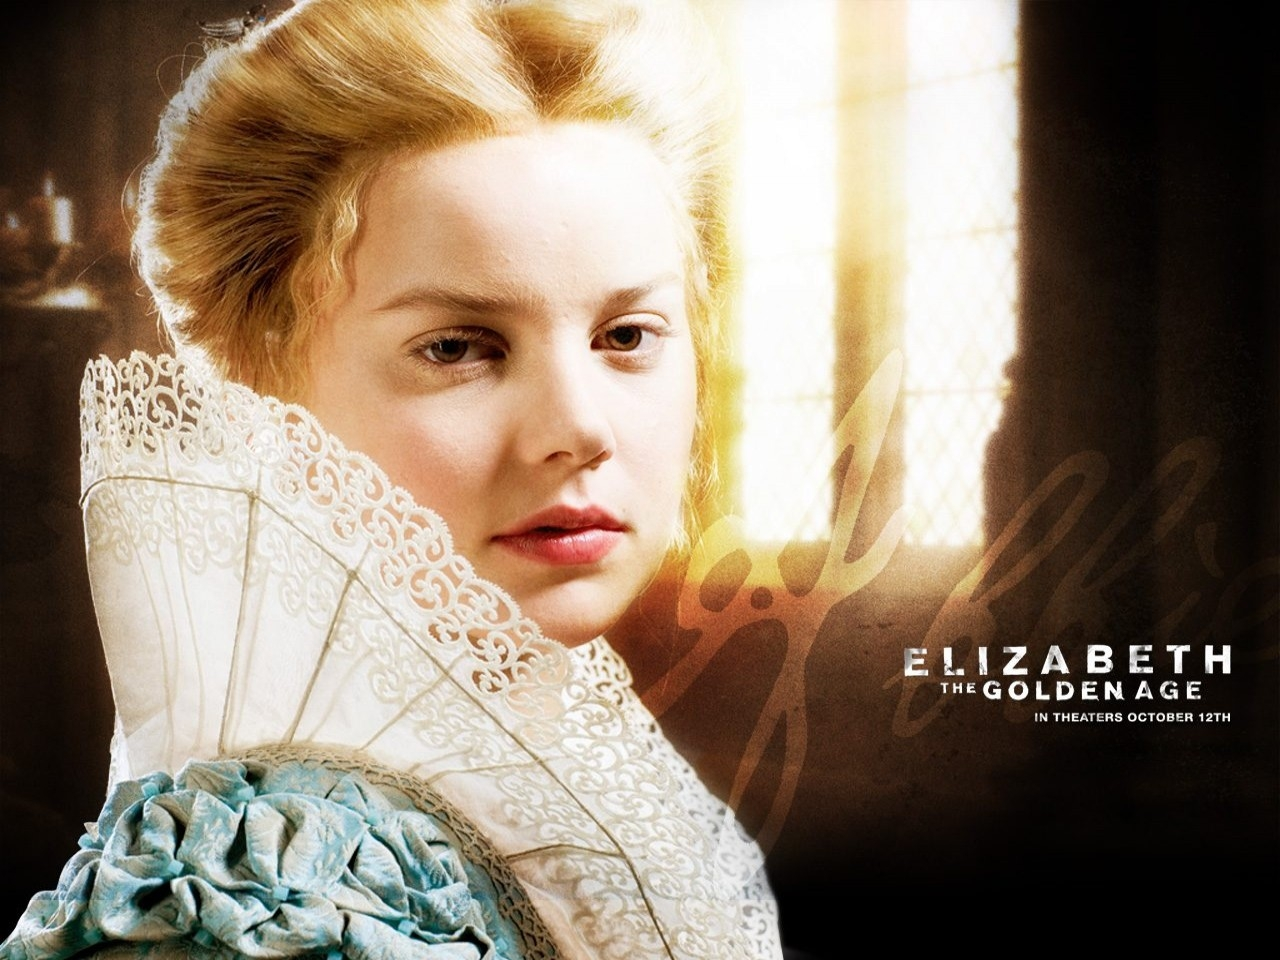 Wallpaper del film Elizabeth: The Golden Age con Abbie Cornish